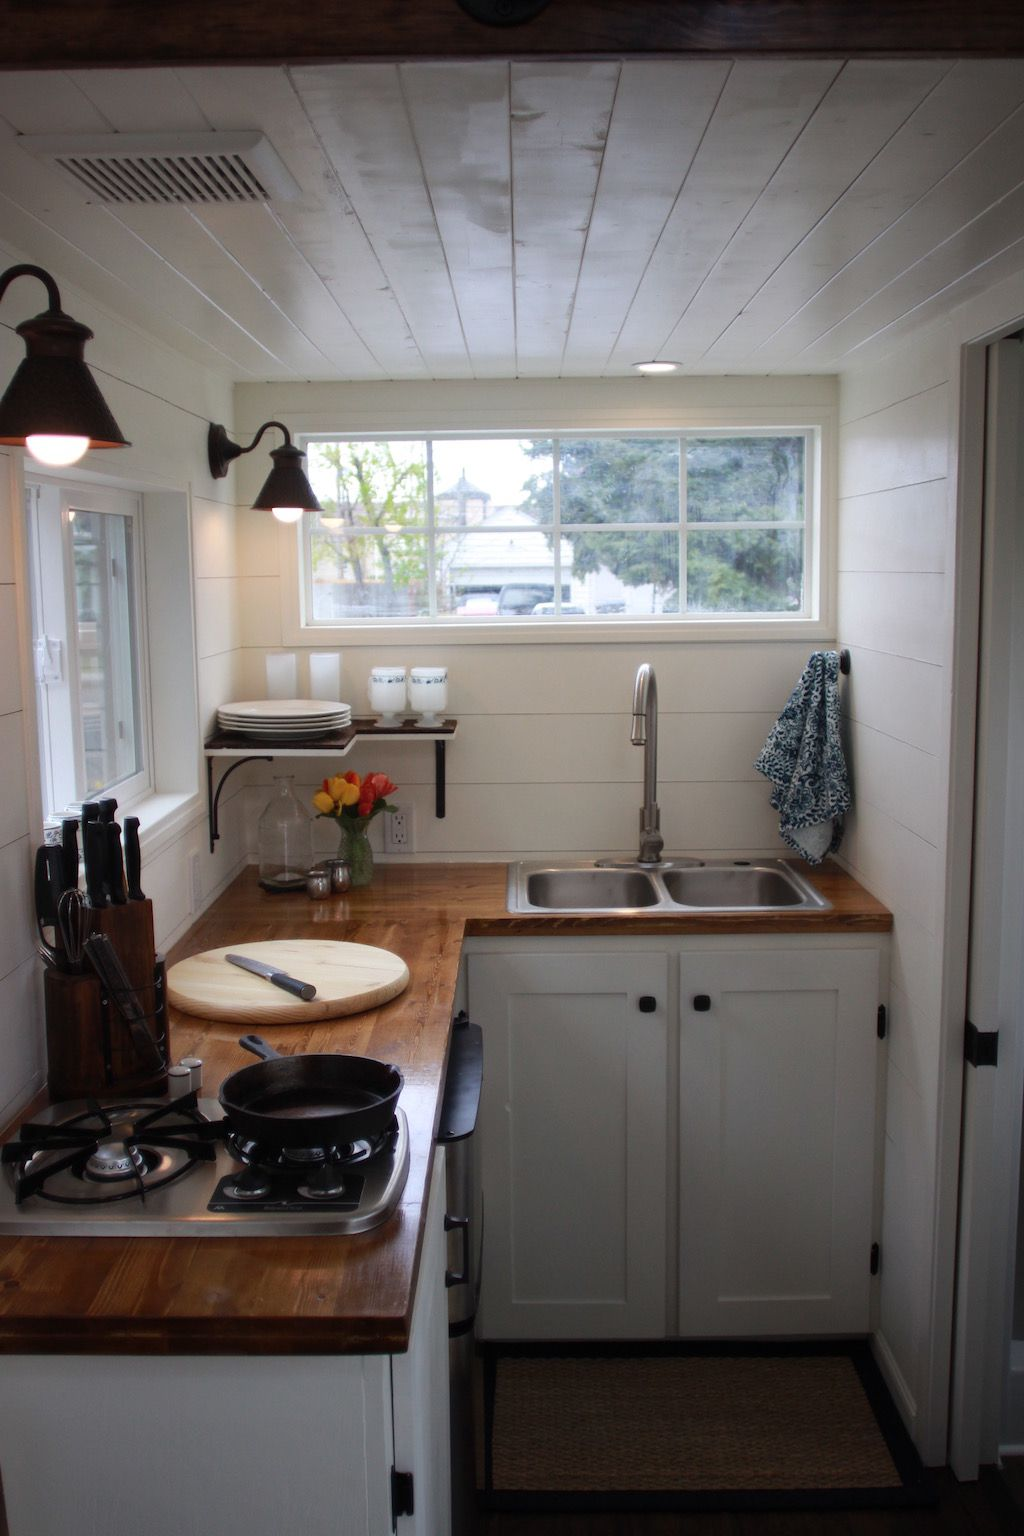 Thompson Tiny House Tiny House Kitchen Kitchen Remodel Small